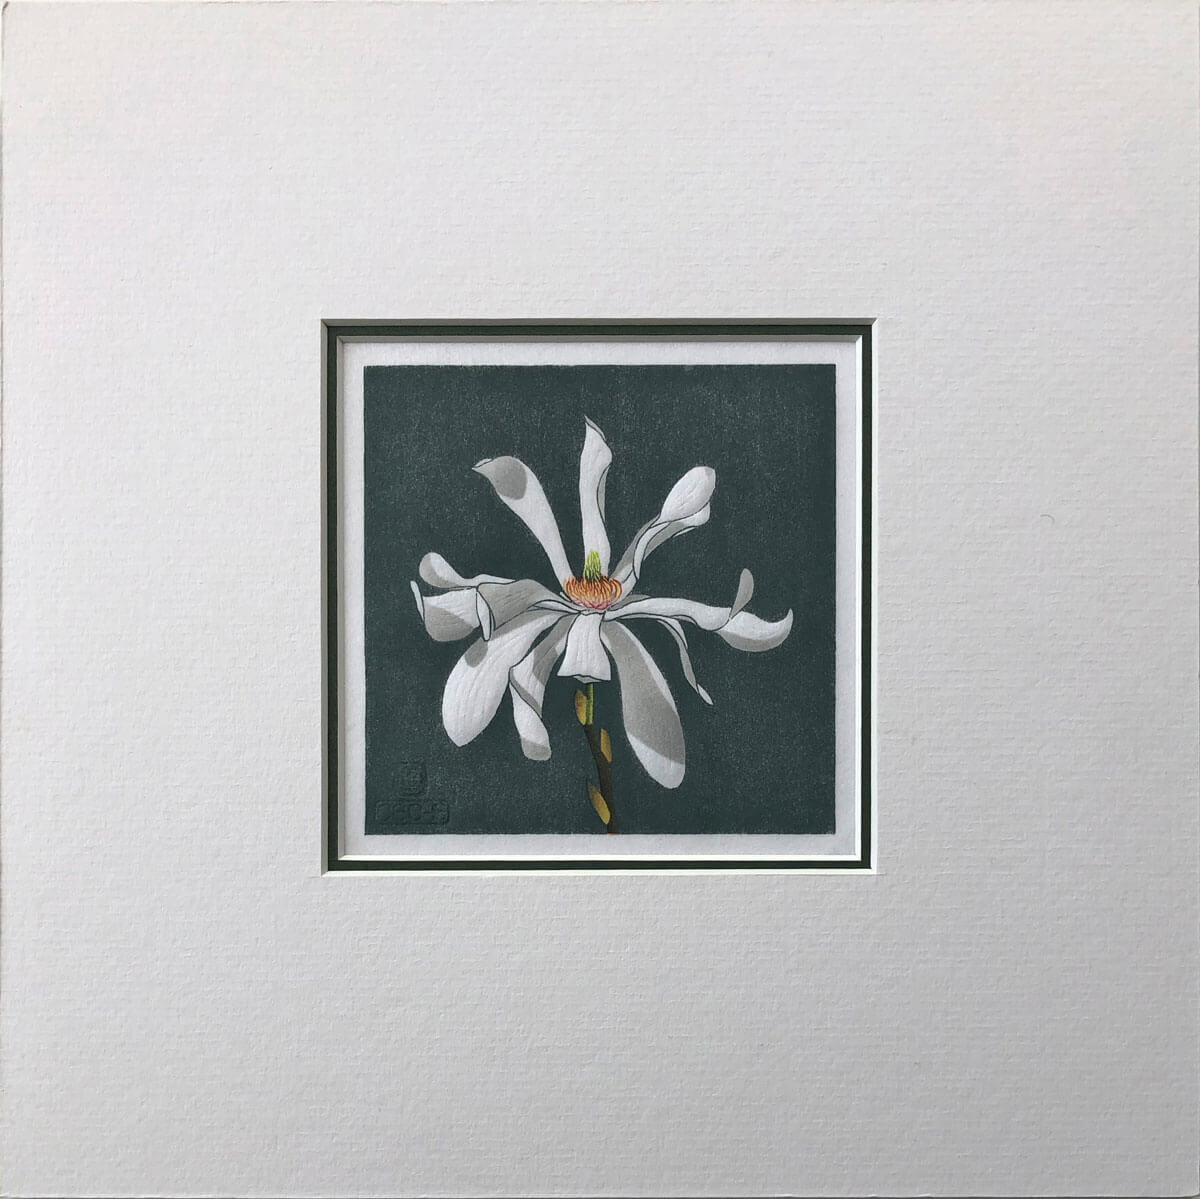 Magnolia Stellata woodblock print mounted by Claire Cameron-Smith